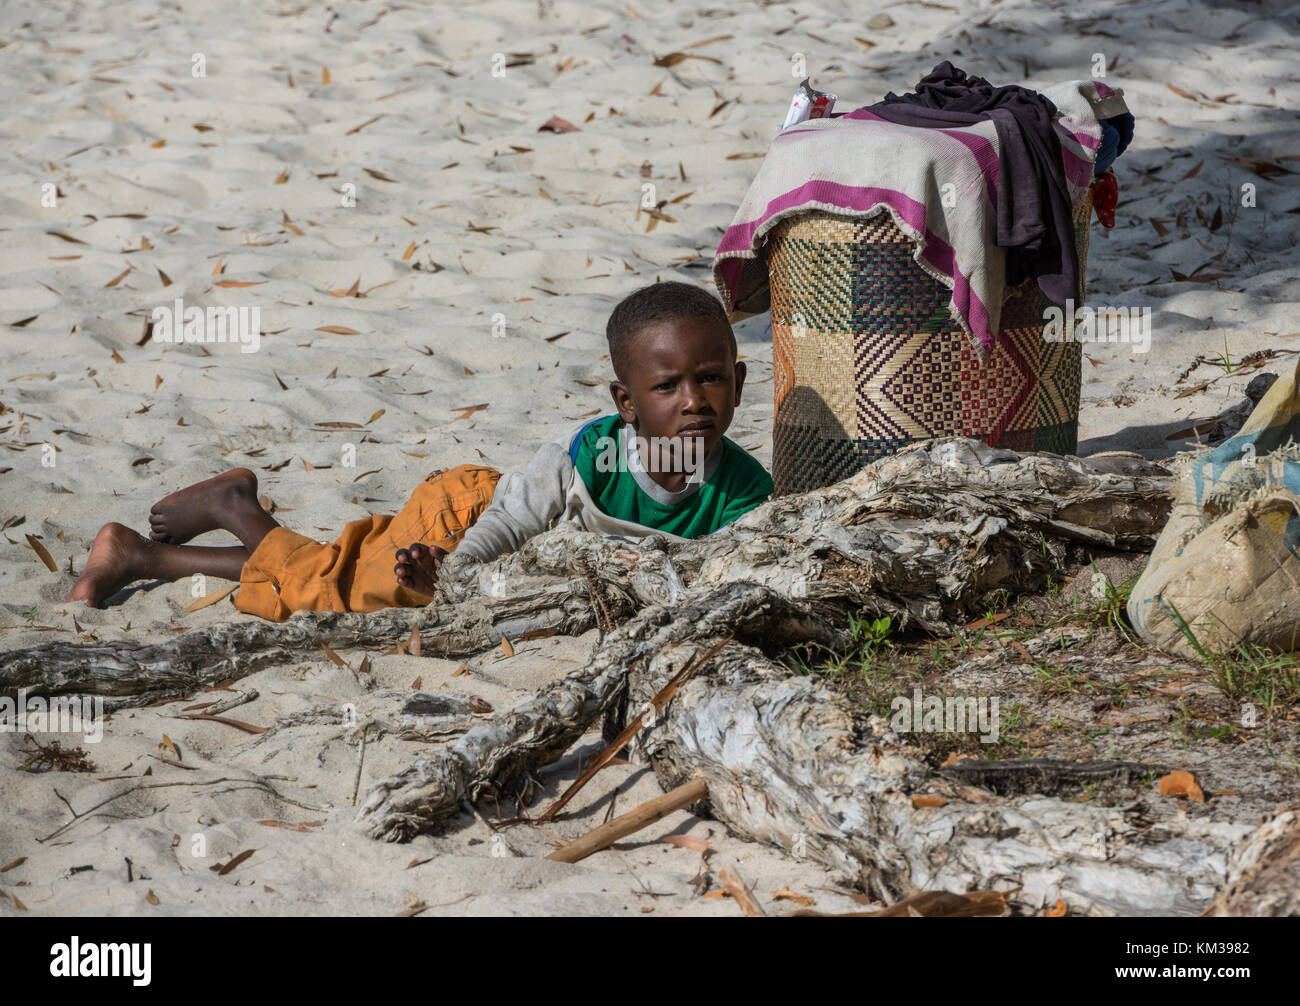 Young Malagasy boy play in the sand. Madagascar, Africa. - Stock Image